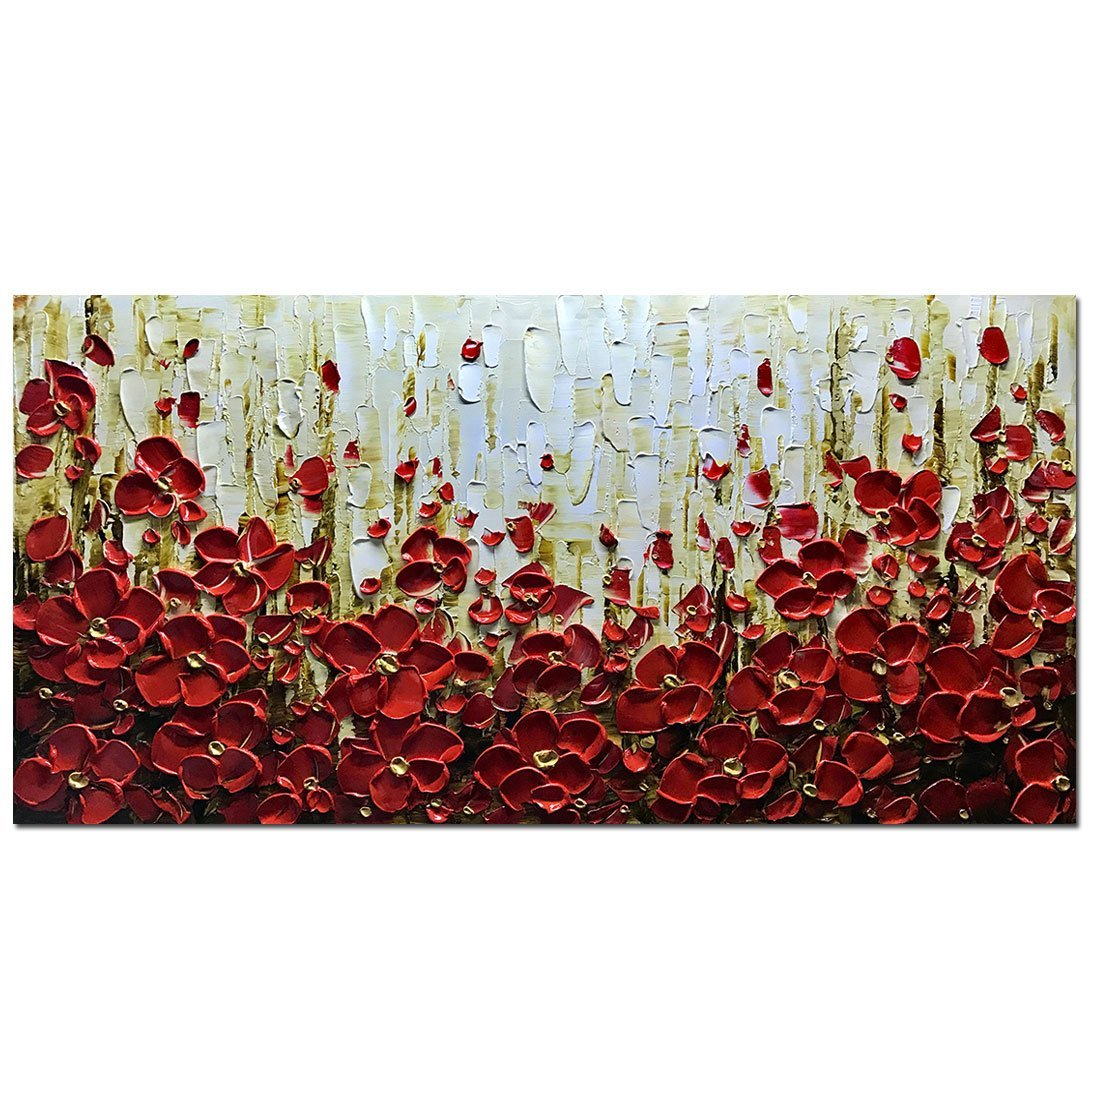 Metuu Modern Canvas Paintings, Texture Palette Knife Red Flowers Paintings Home Decor Wall Art Colorful 3D Flowers Wall Decoration Abstract Painting Wood Inside Framed Ready to Hang 20x40inch